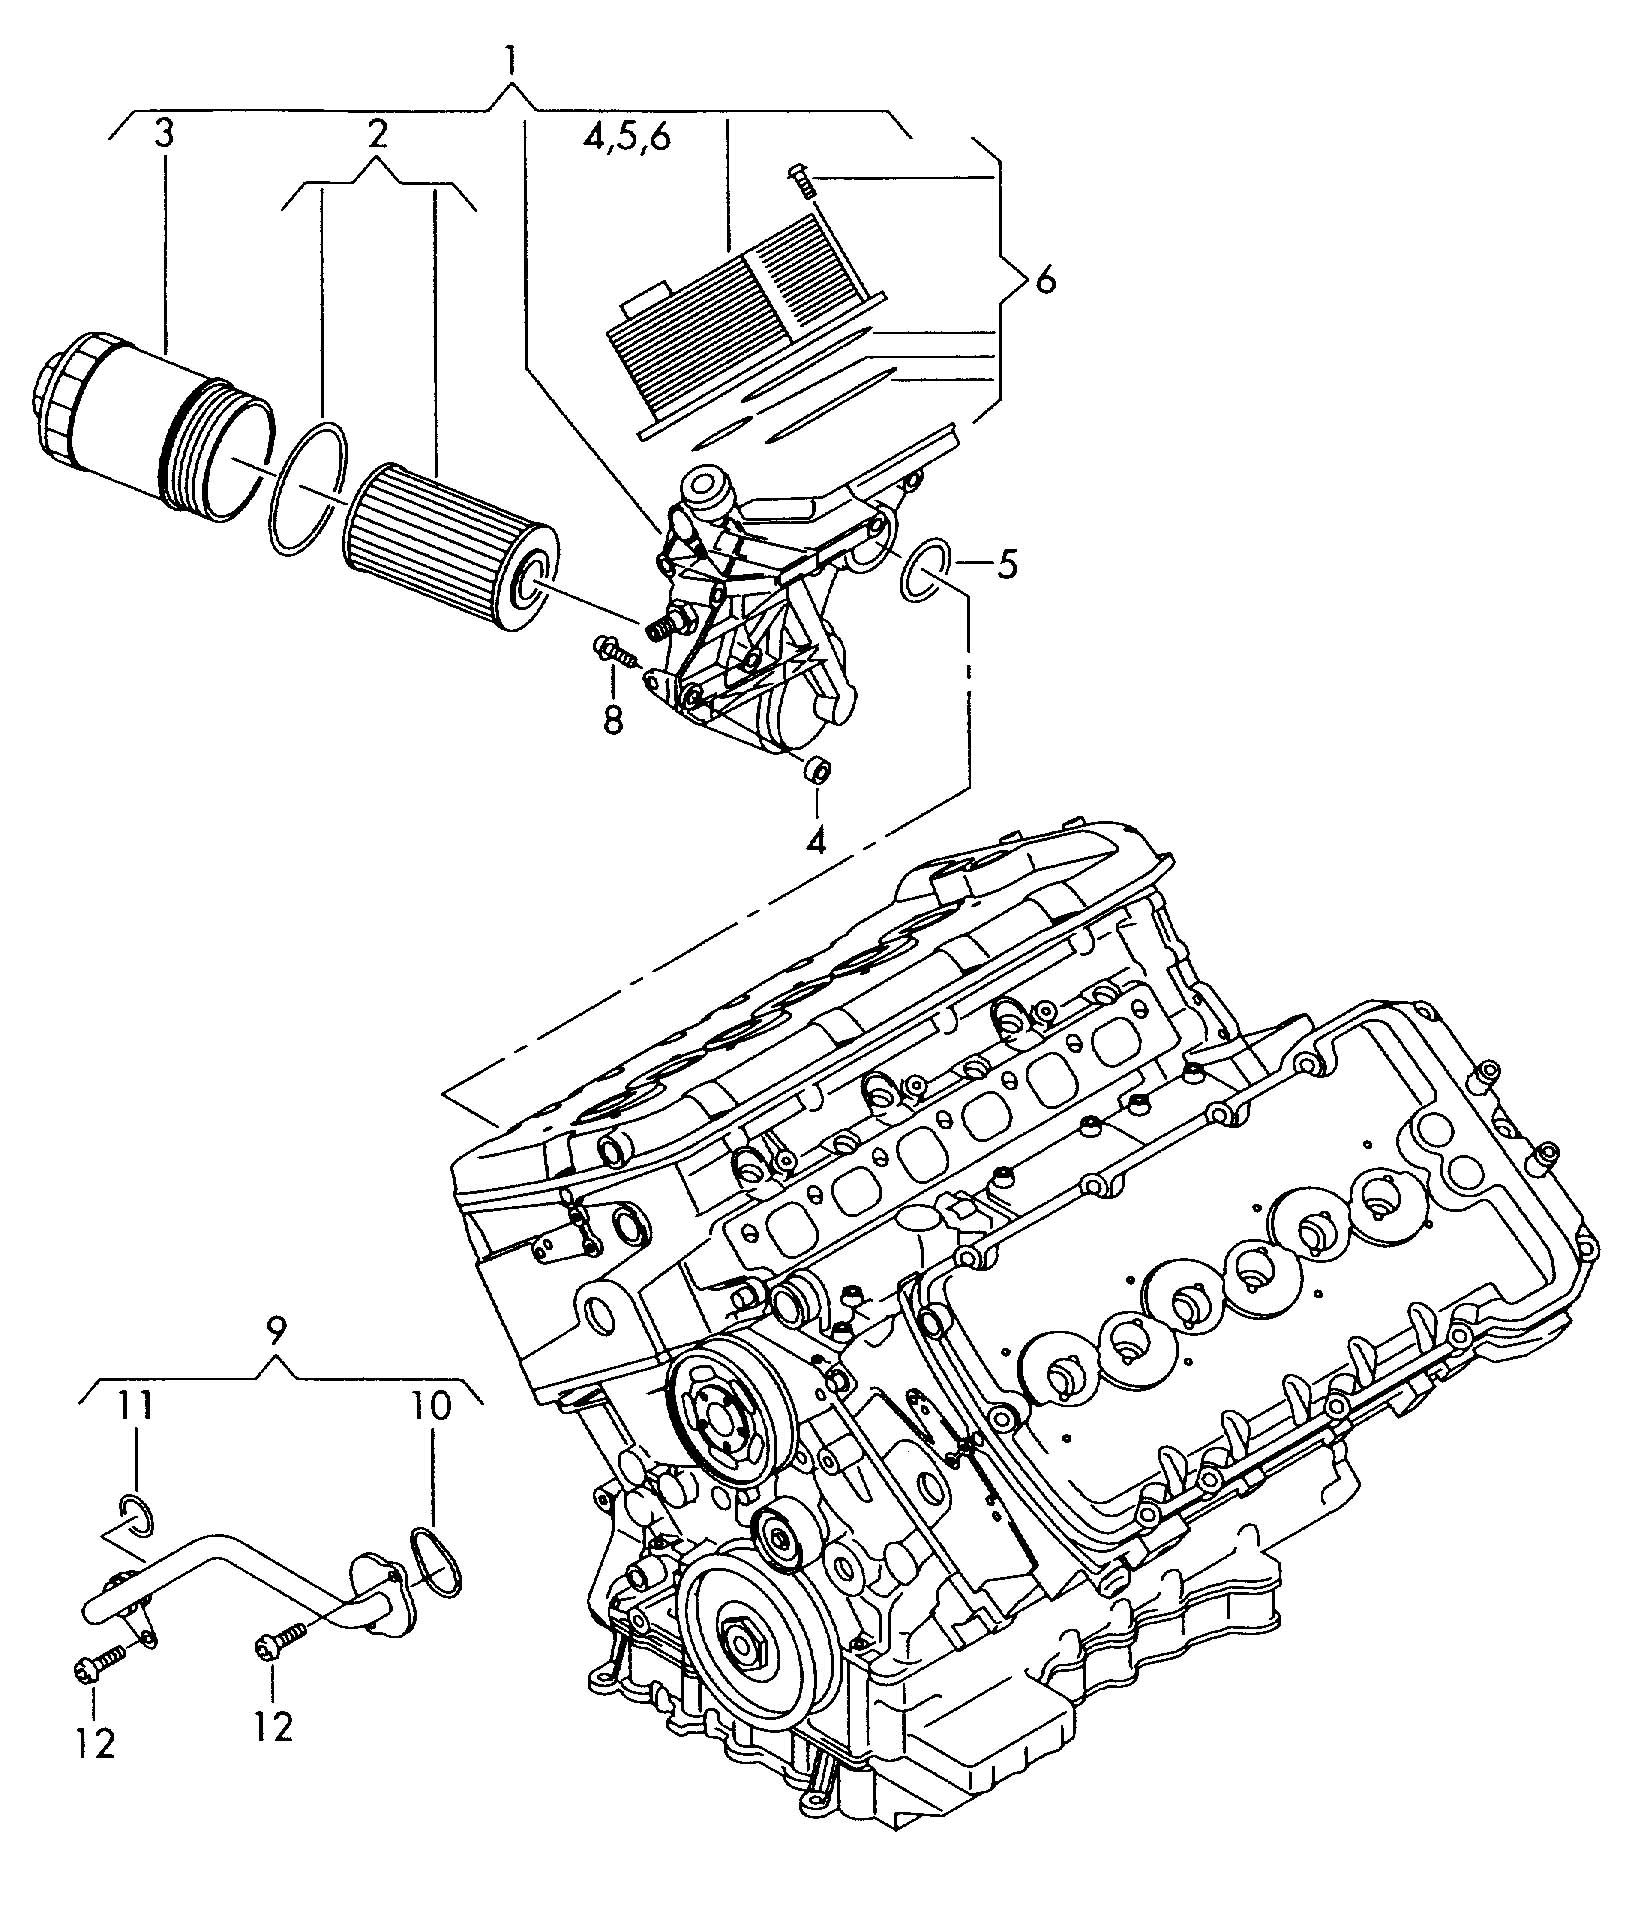 bmw e61 tailgate wiring diagram 2001 nissan altima exhaust system imageresizertool com